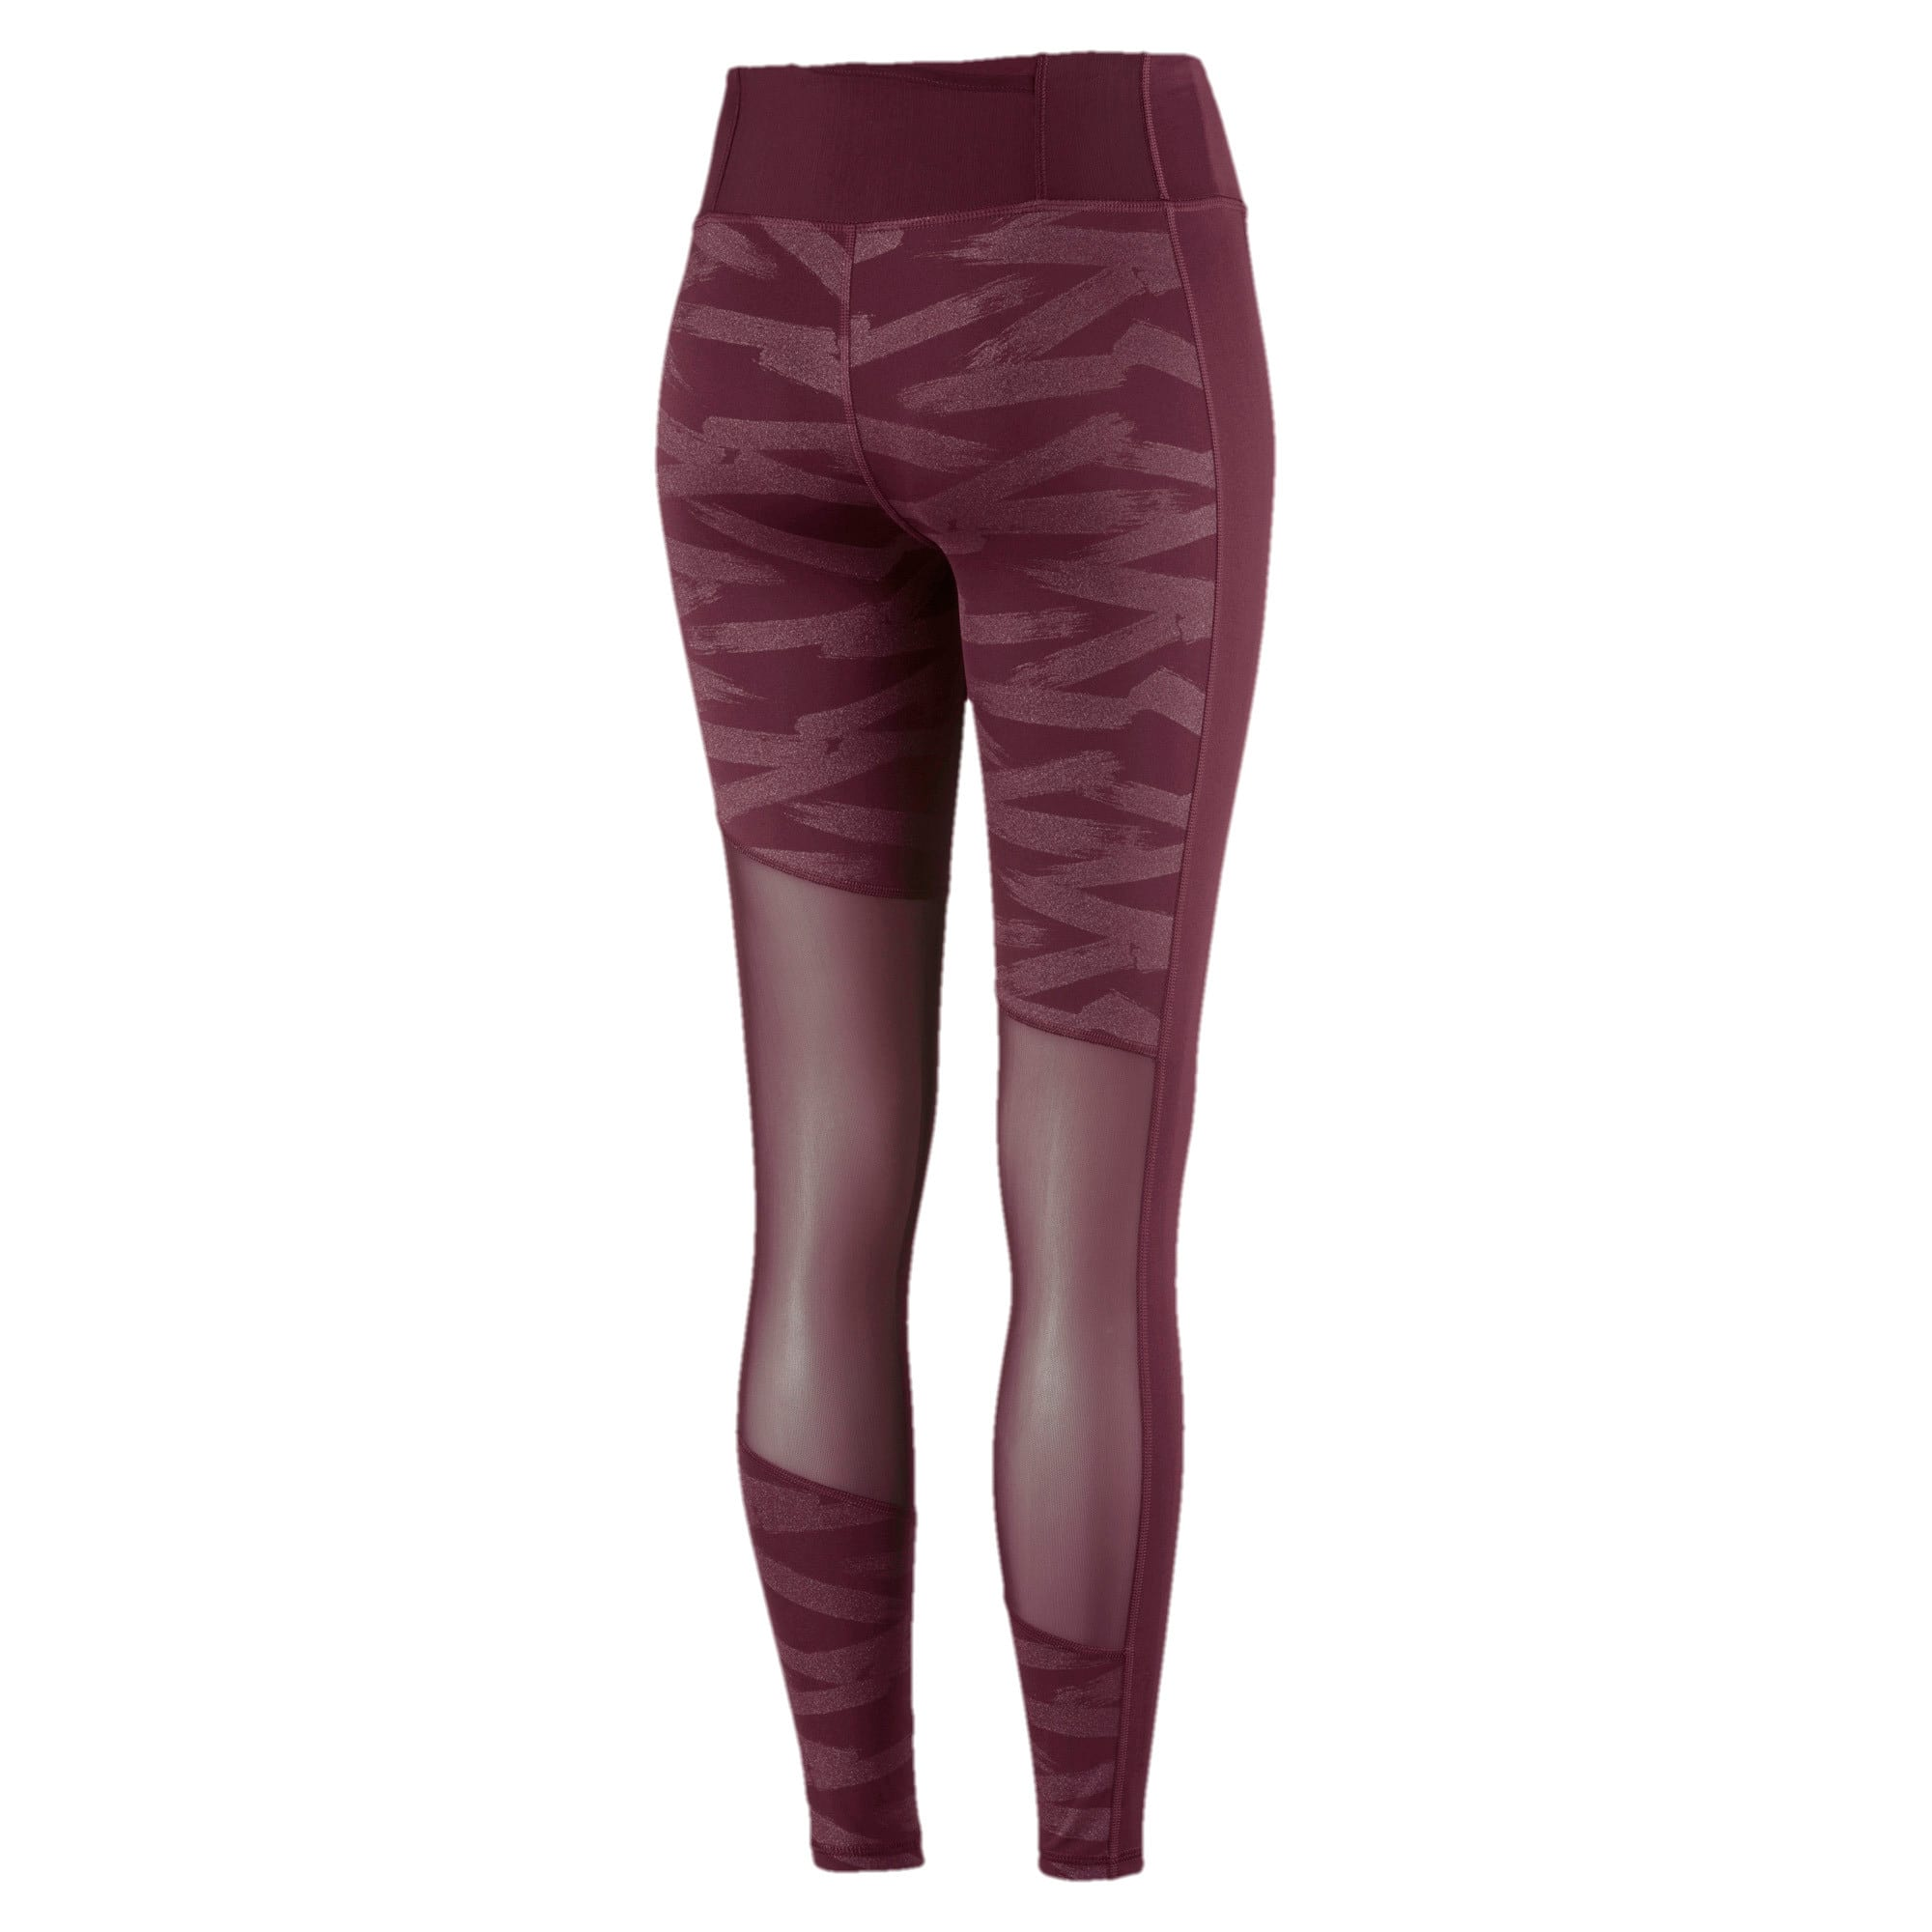 Thumbnail 5 of Always On Graphic 7/8 Women's Tights, Fig-Magenta Haze, medium-IND